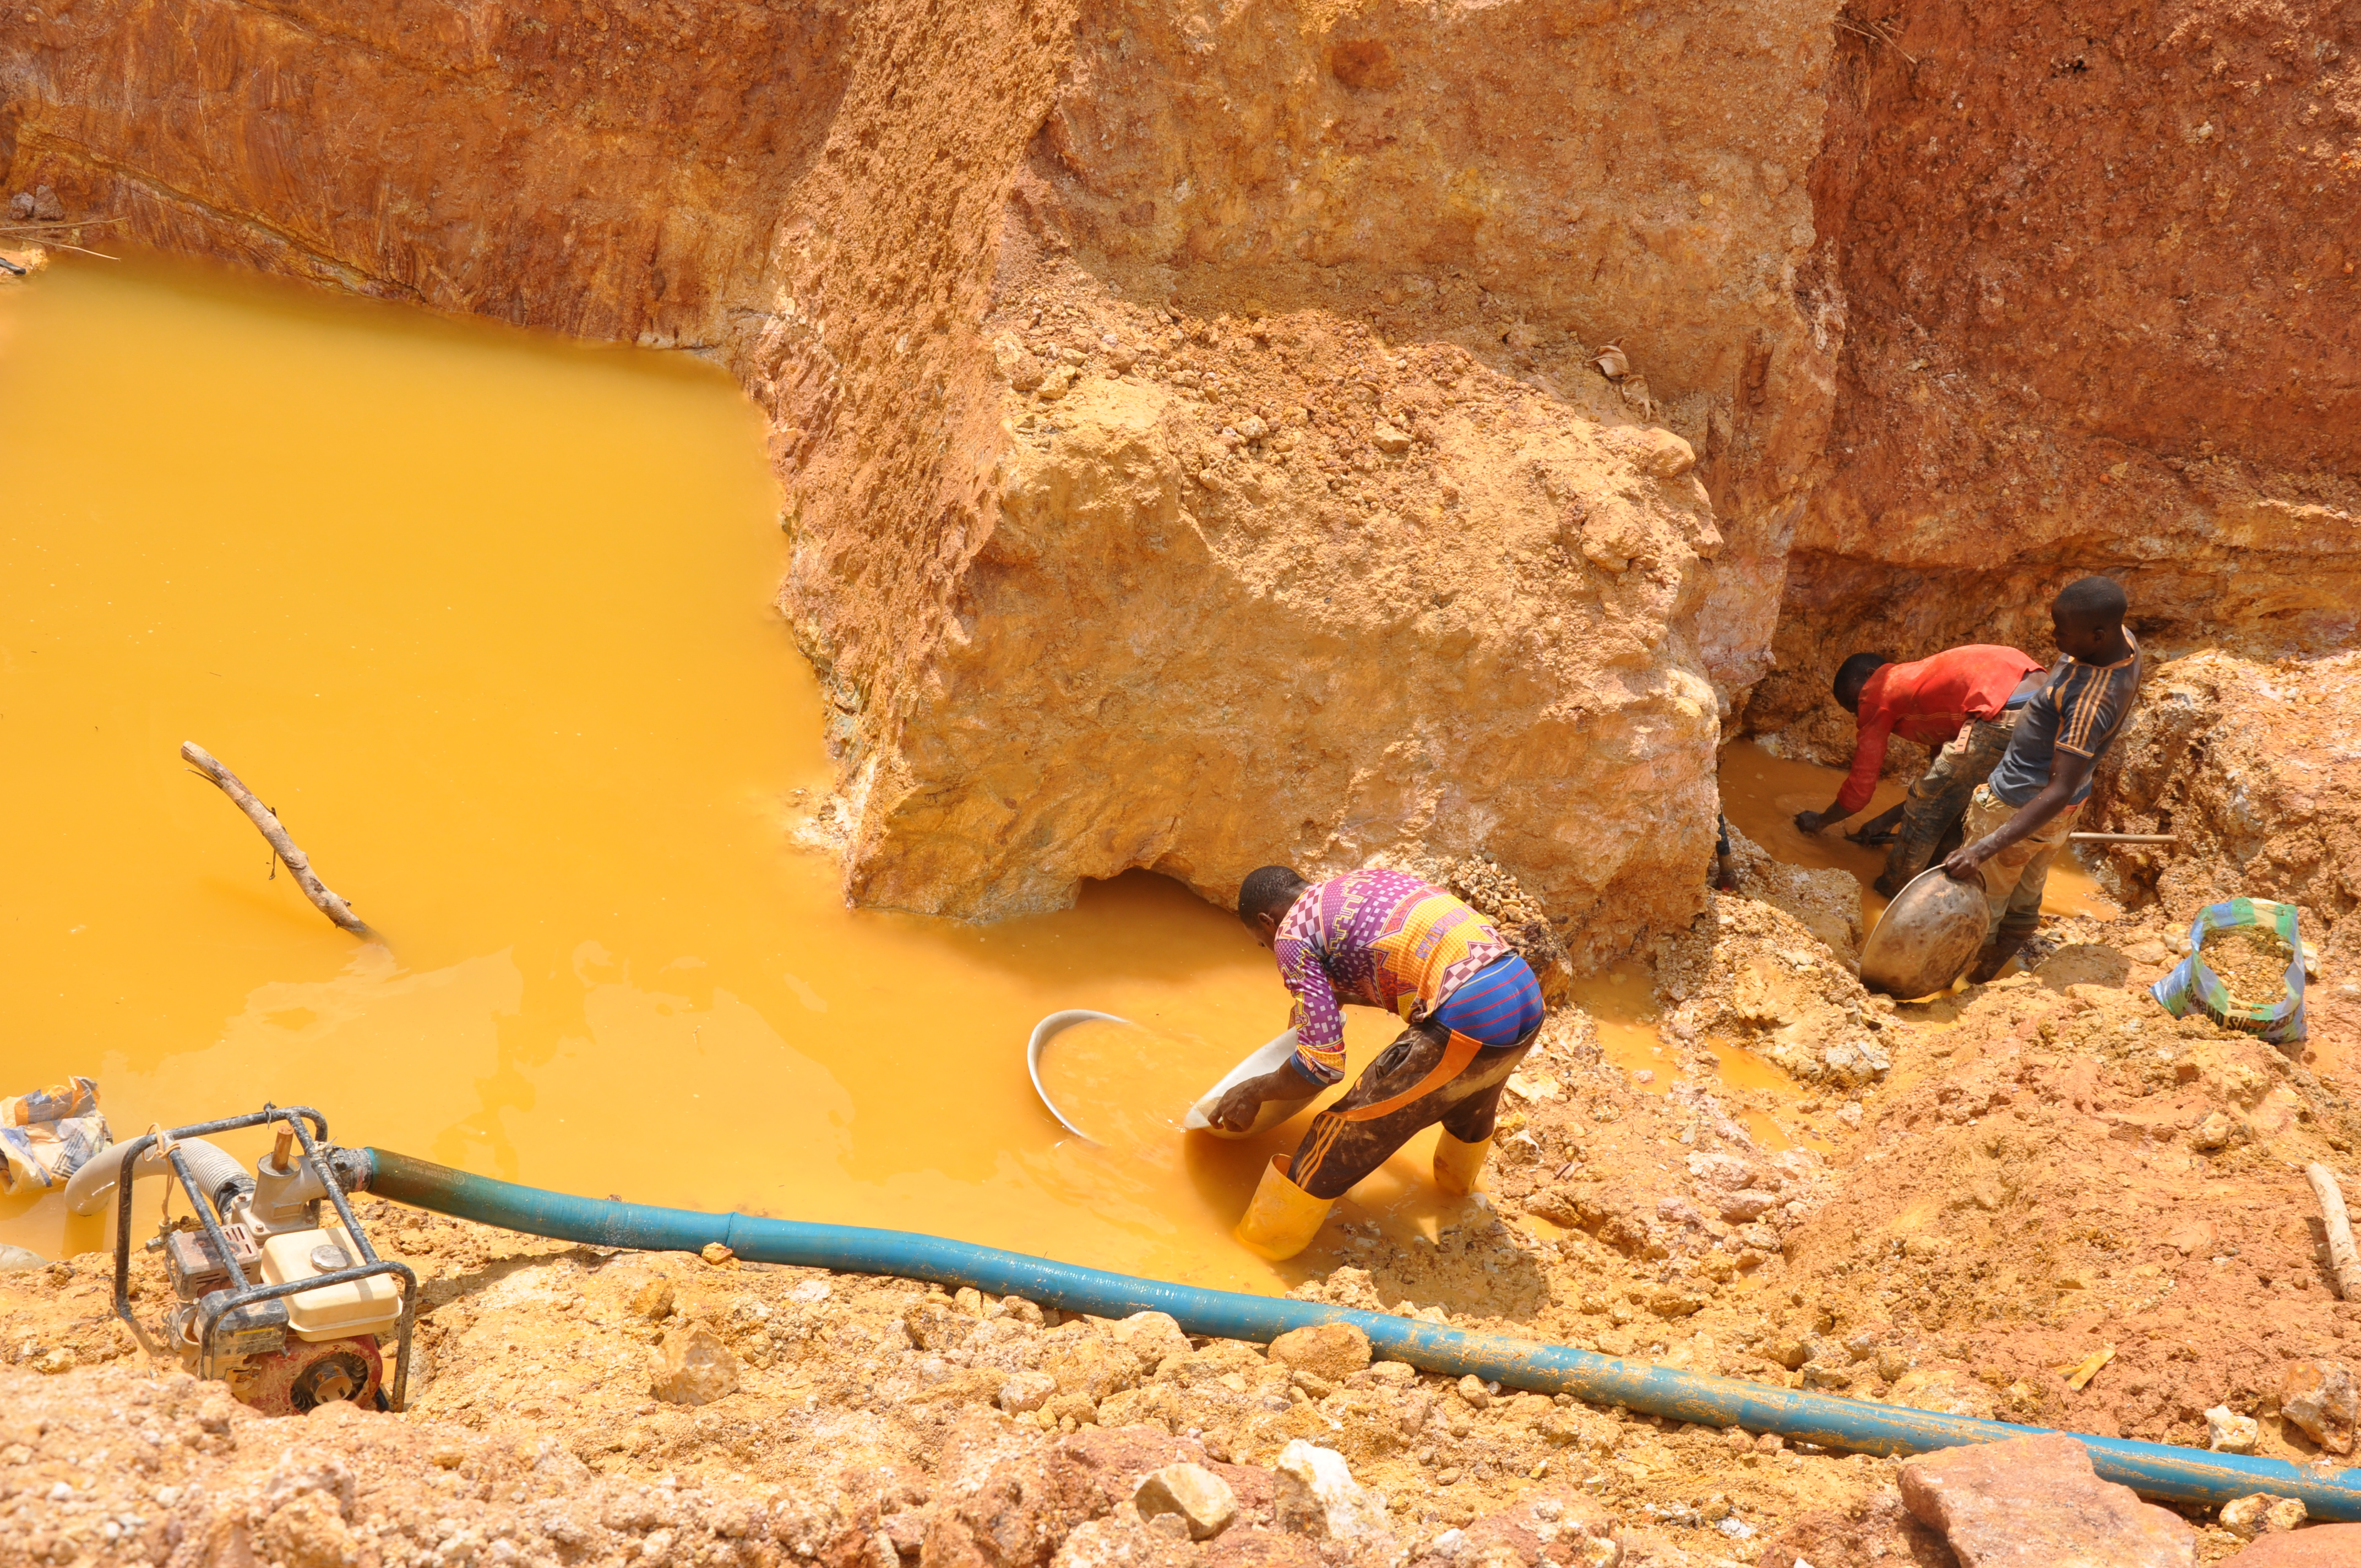 Chinese miners invade Cameroon, exploiting gold without authorization and causing deaths